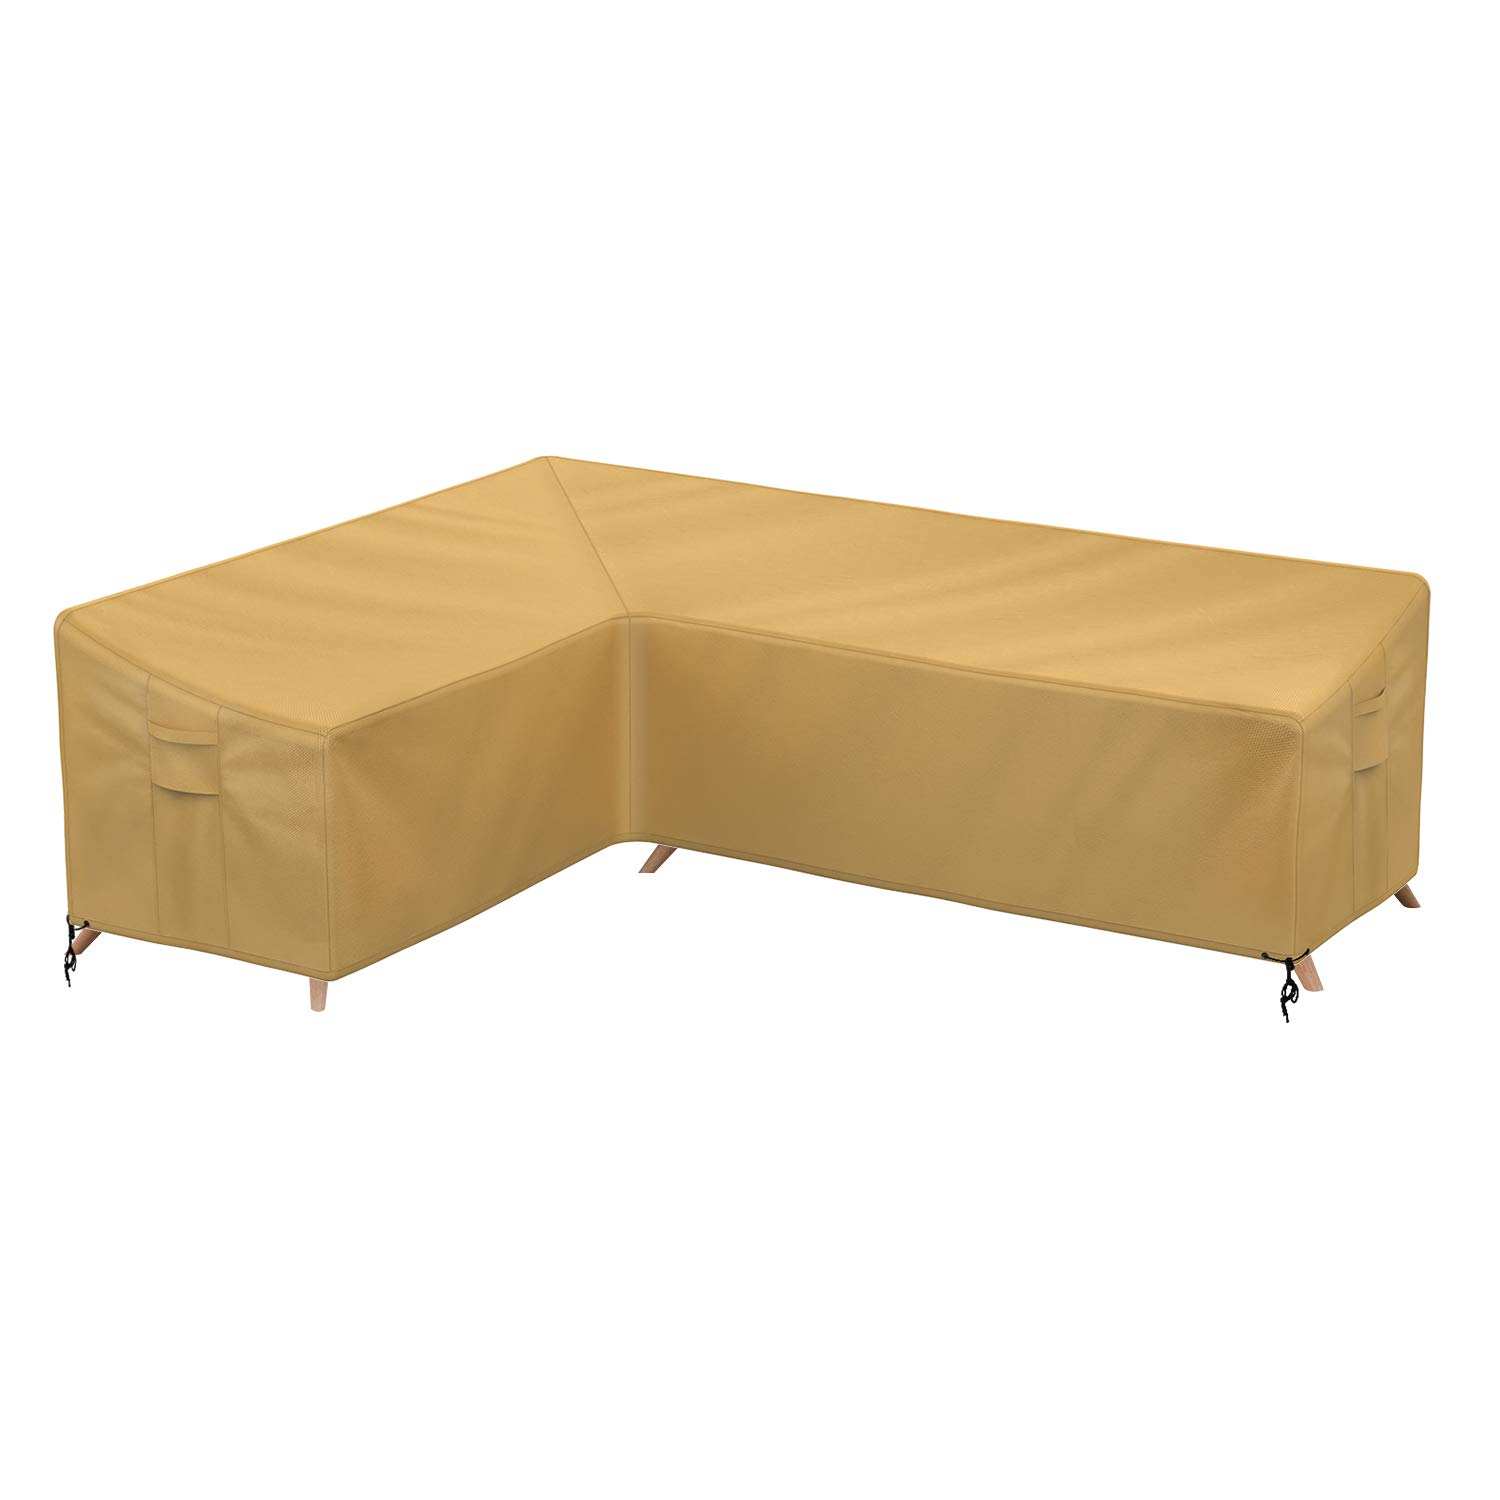 Sunkorto Patio L-Shaped Sectional Sofa Cover, Left Facing Furniture Cover Garden Couch Cover Waterproof Wear-Resistant for Outdoor